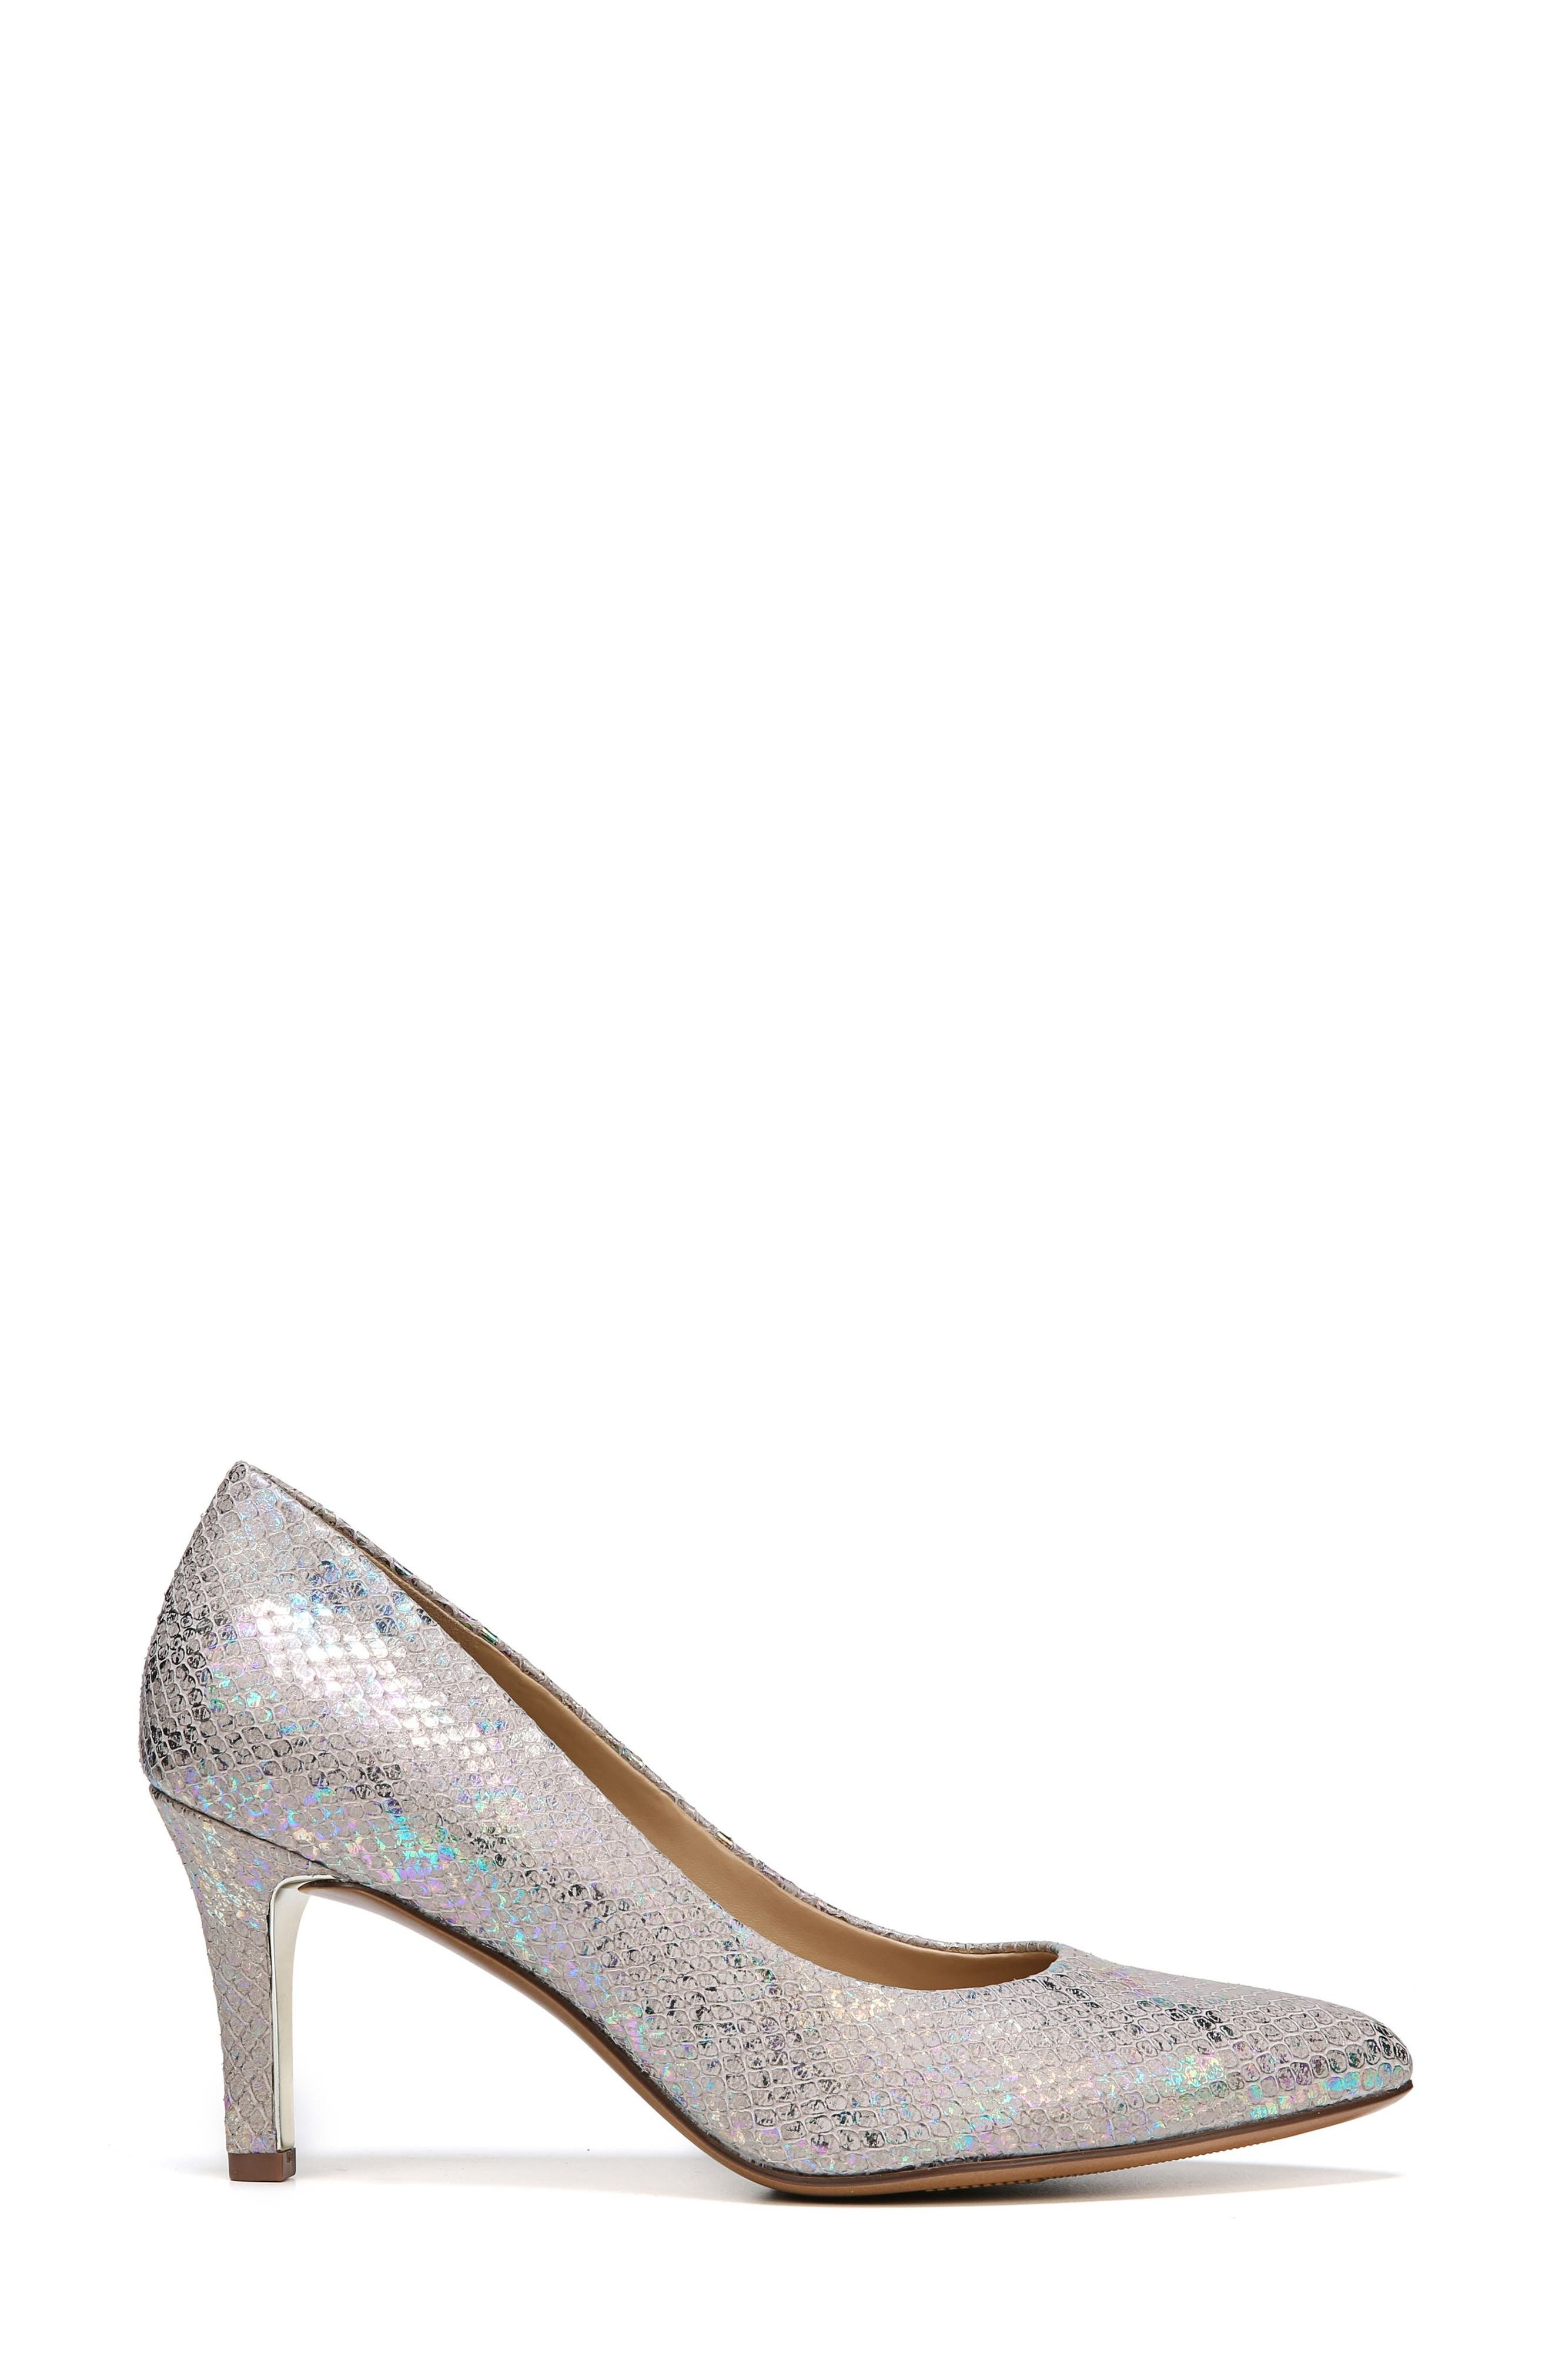 Natalie Pointy Toe Pump,                             Alternate thumbnail 3, color,                             Silver Snake Print Leather